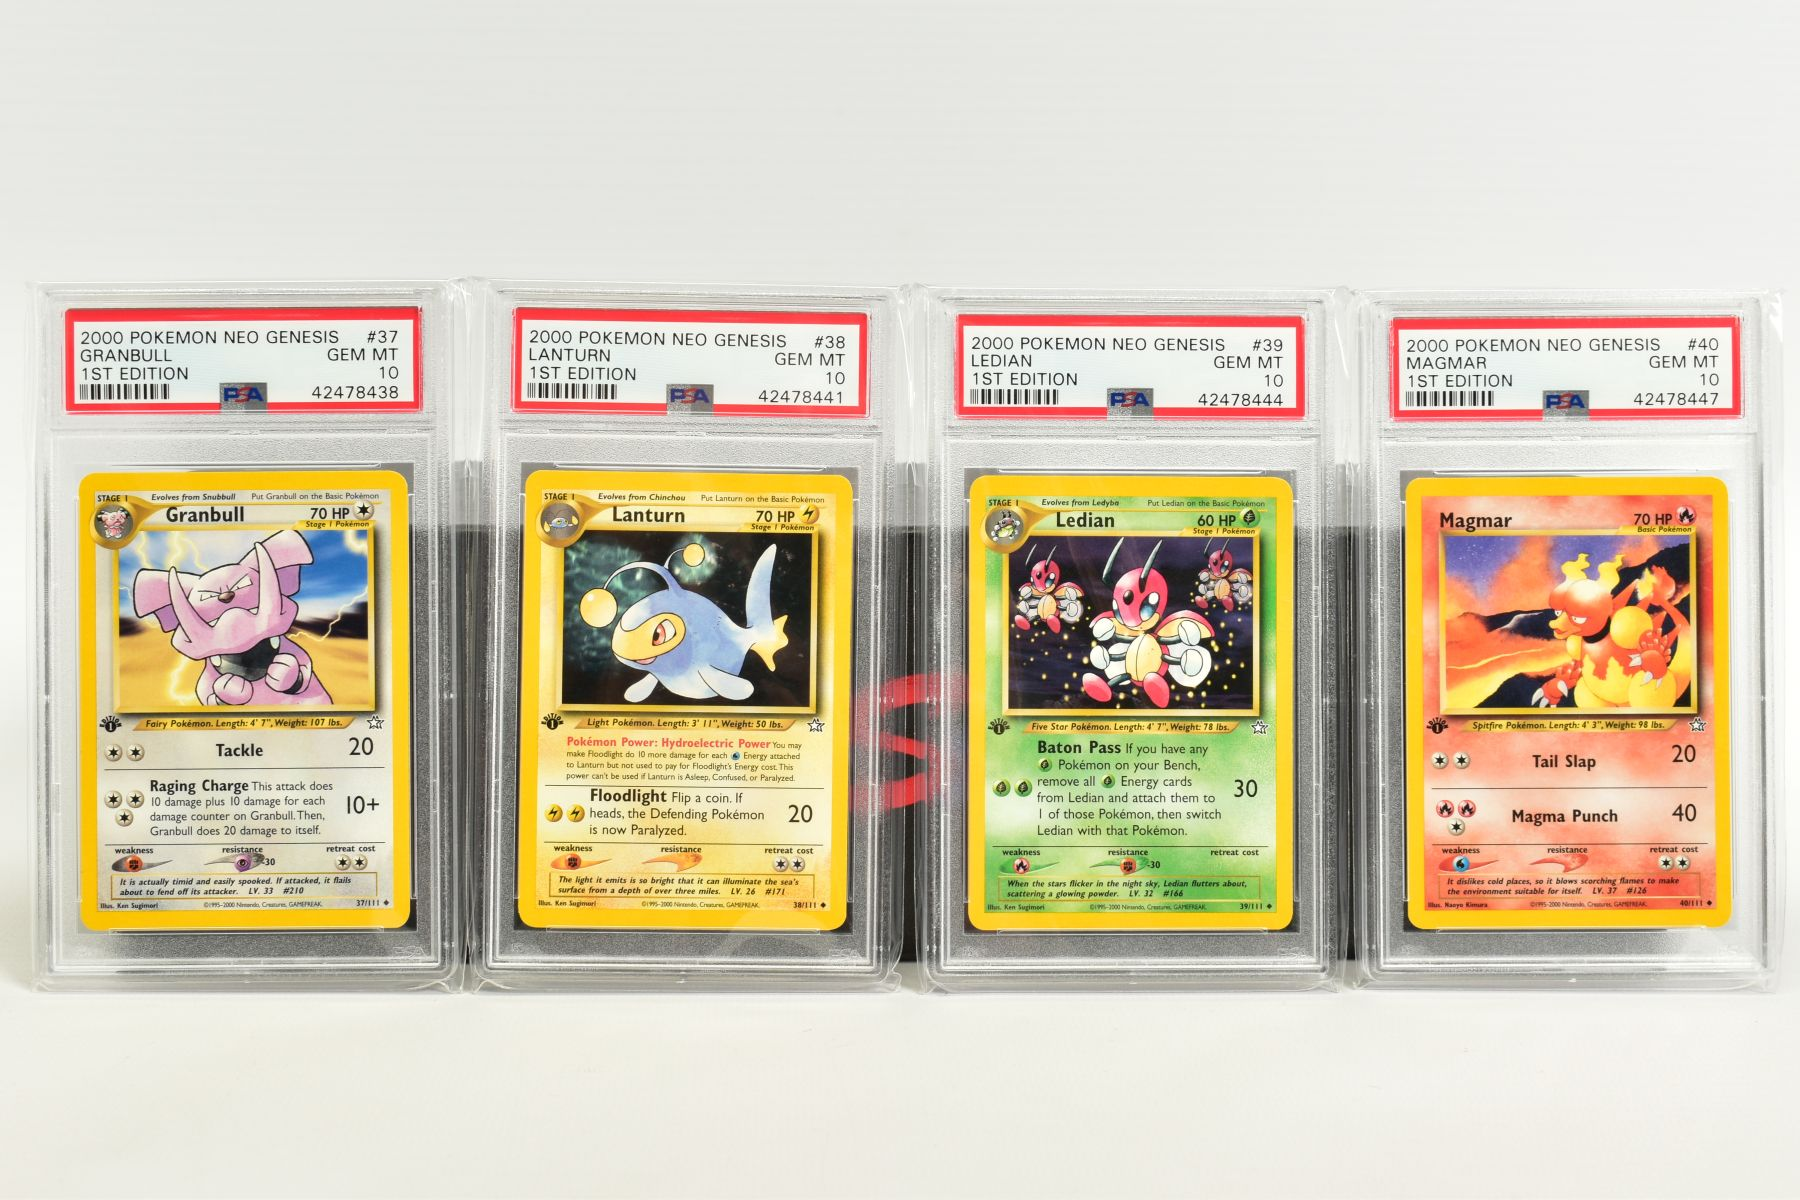 A QUANTITY OF PSA GRADED POKEMON 1ST EDITION NEO GENESIS SET CARDS, all are graded GEM MINT 10 and - Image 6 of 24